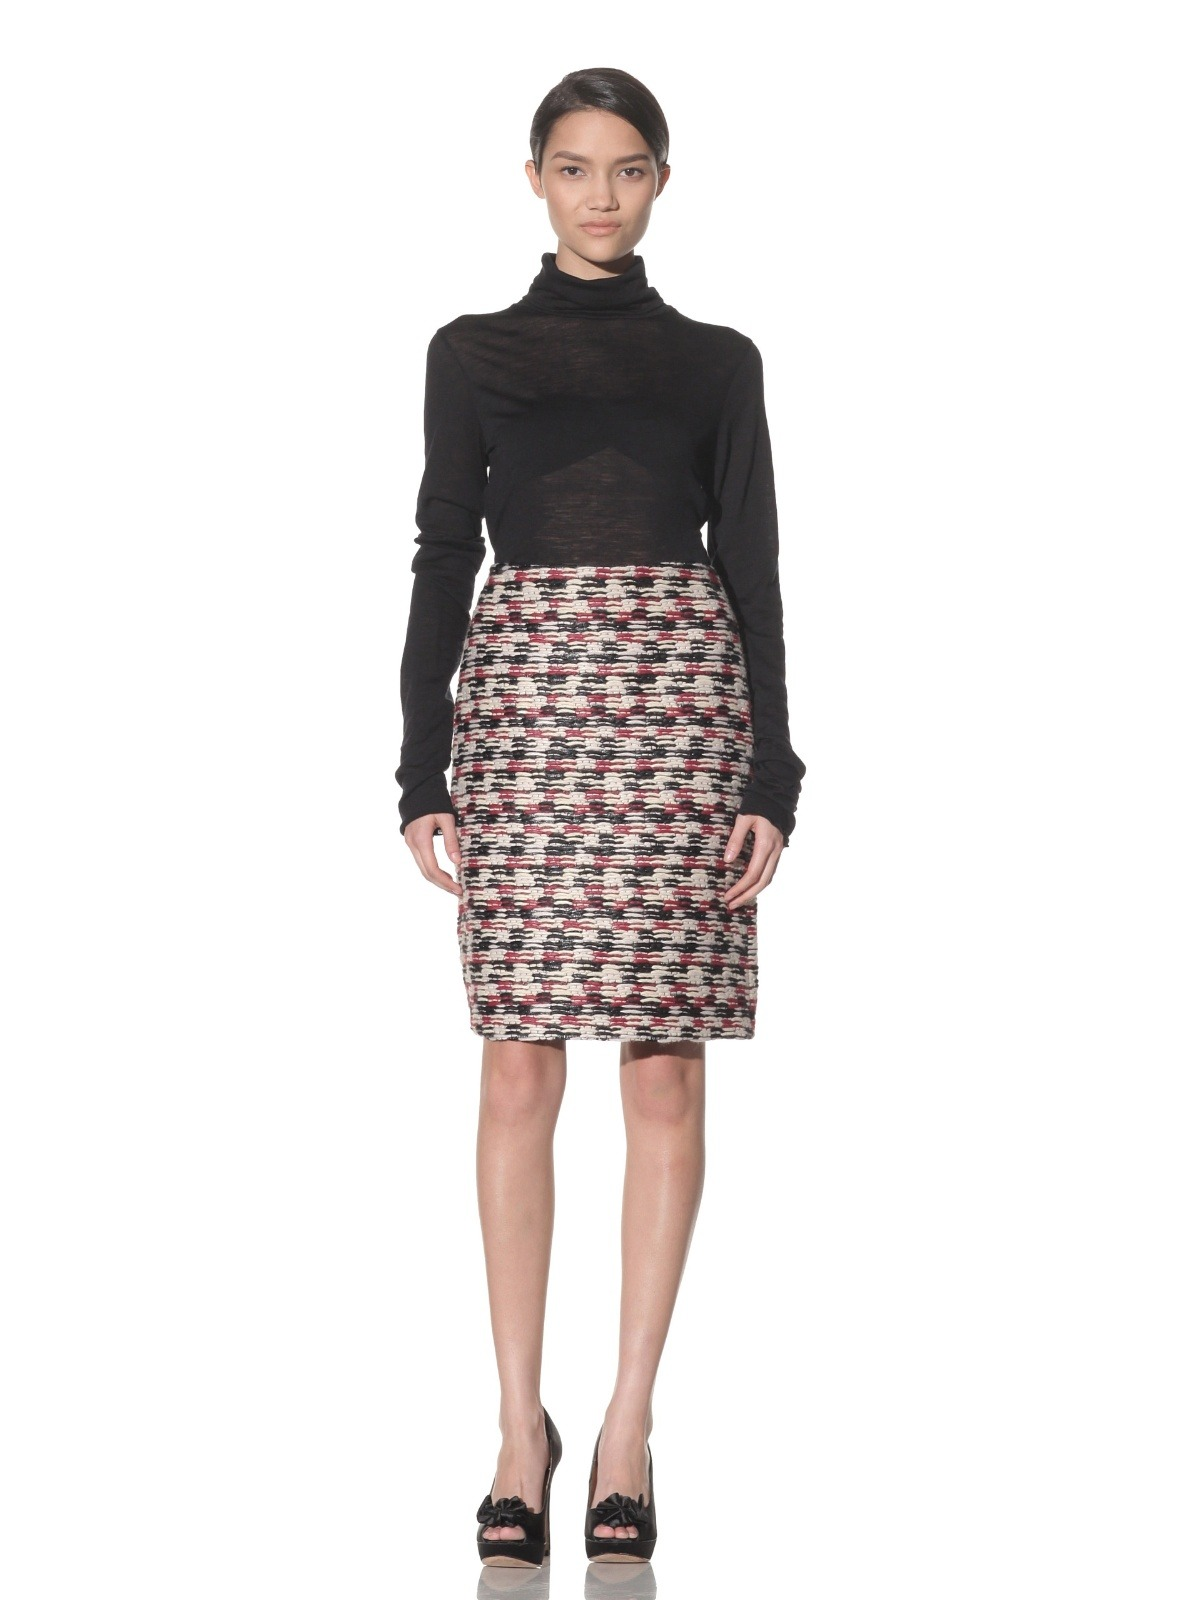 Deal of the Day: Derek Lam Chinz Tweed Pencil Skirt $199 Myhabit.com is currently having a flash sale with designer Derek Lam. There are many cute pieces but I find this tweed skirt is a staple that will last a lifetime. I am not a huge fan of the shirt it is matched with and feel a button down shirt is it's precise match. Perfect for the holiday season,and in-and-out of the office. It's a steal for $199.